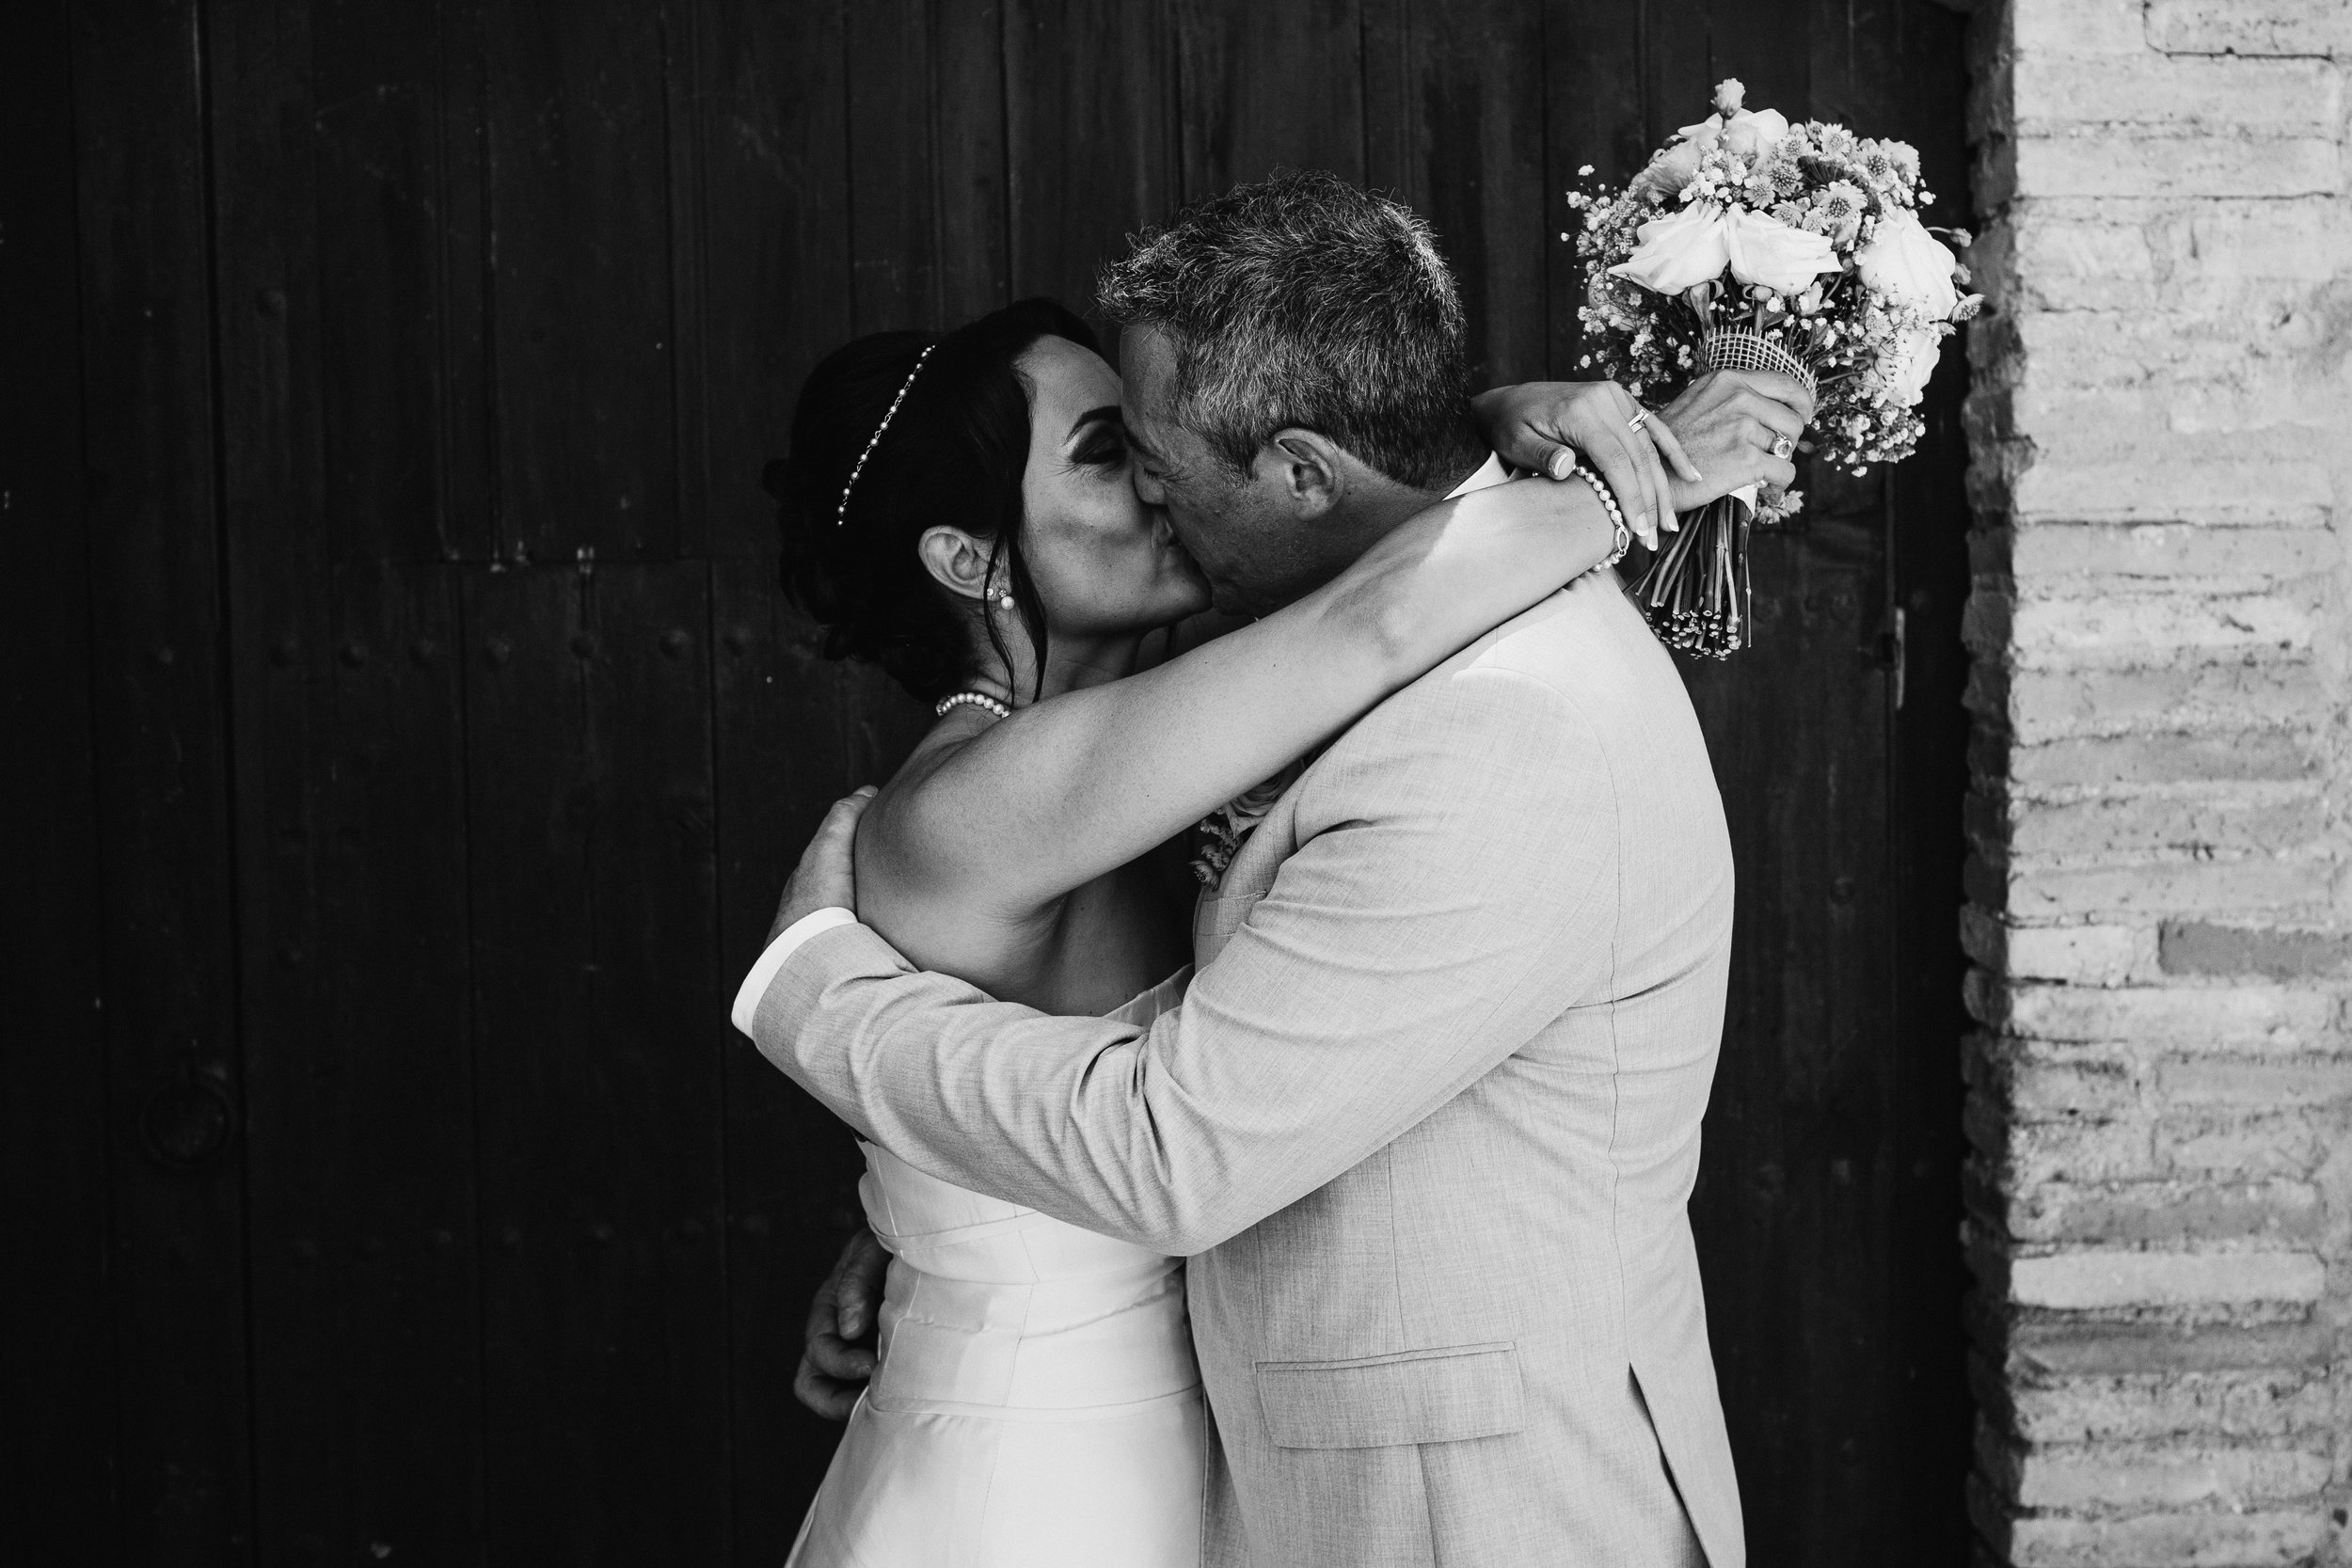 A bride and groom on their wedding day with a bouquet of flowers at Club House 27, Sitges, Vilanova, Barcelona by Jo Kemp Photography